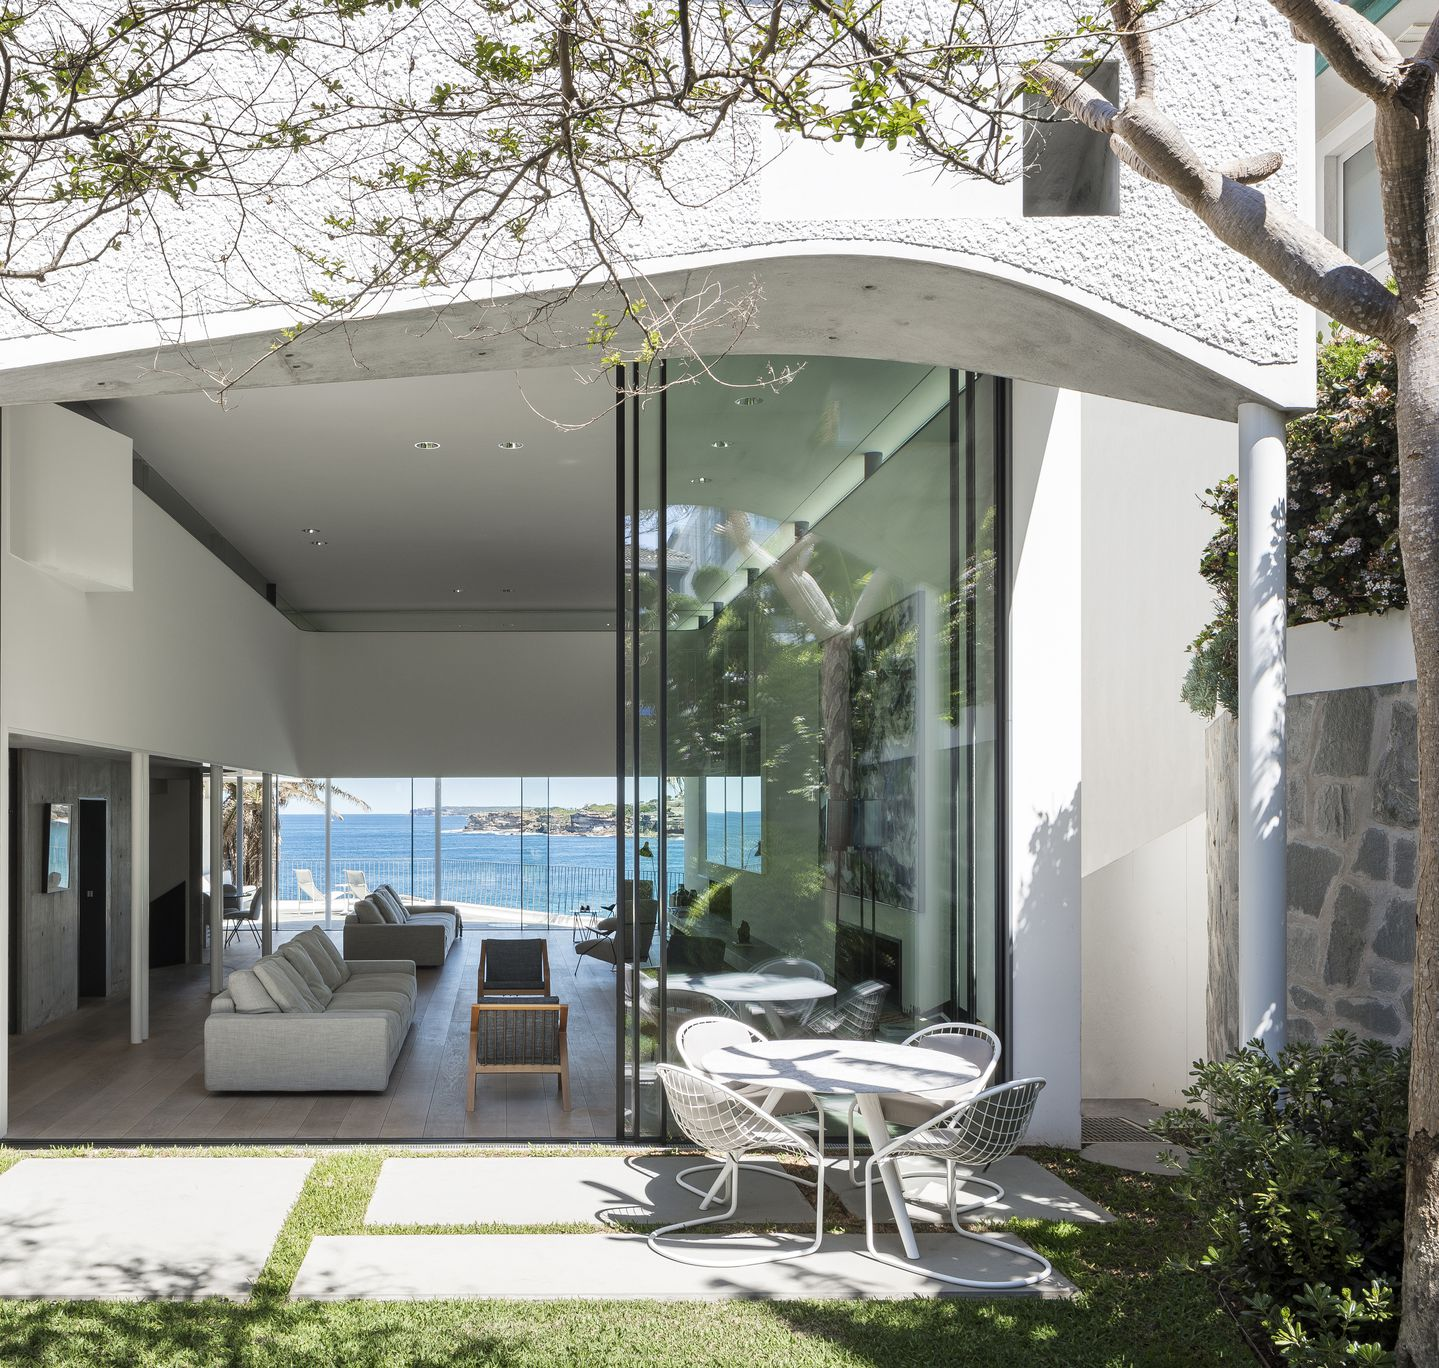 Sculptural concrete beachfront house located in Tamarama along the Bondi to Coogee walk designed by Durbach Block Jaggers Architects.